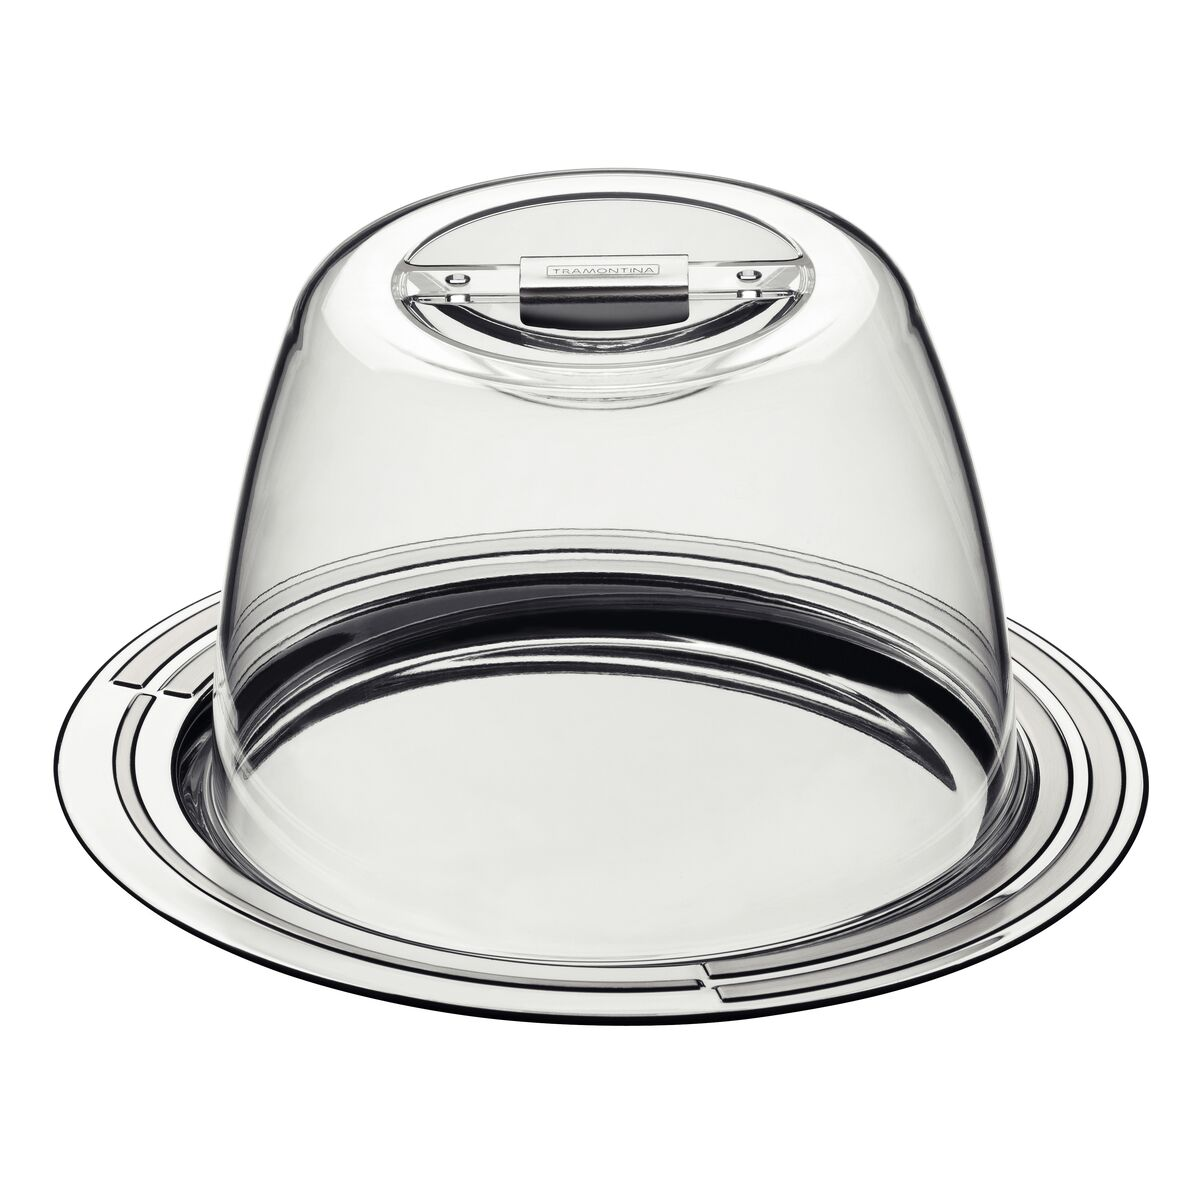 Tramontina Ciclo stainless steel cheese set, 20 cm, 2 pc set